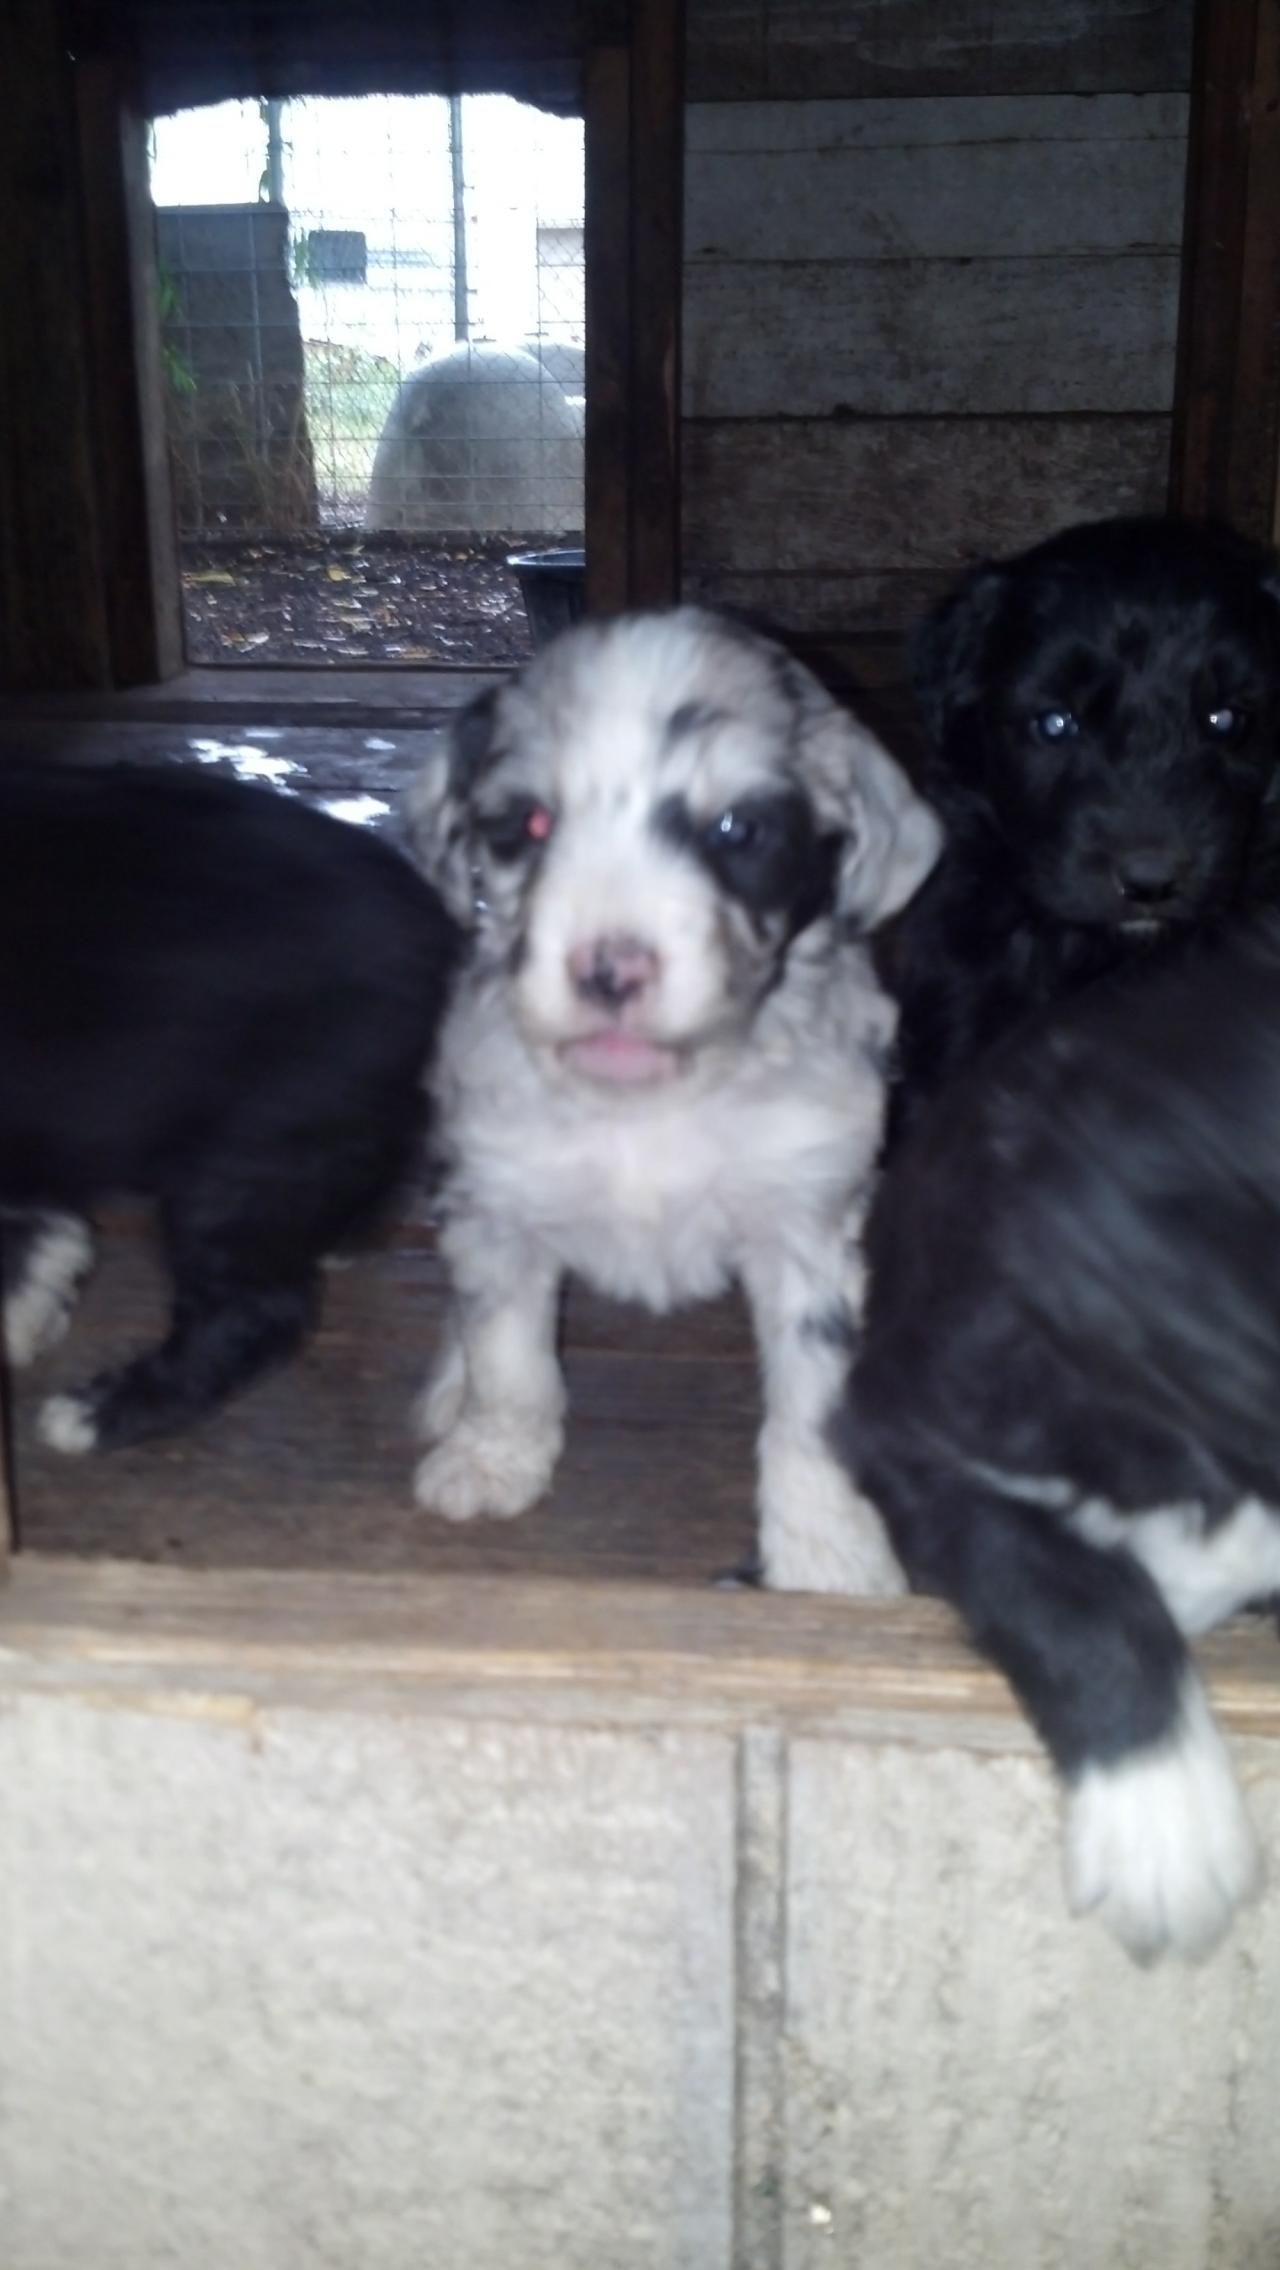 HoldenRaussies - AussieDoodlesWe still have pups available #aussiedoodles#bluemerle#gorgeous